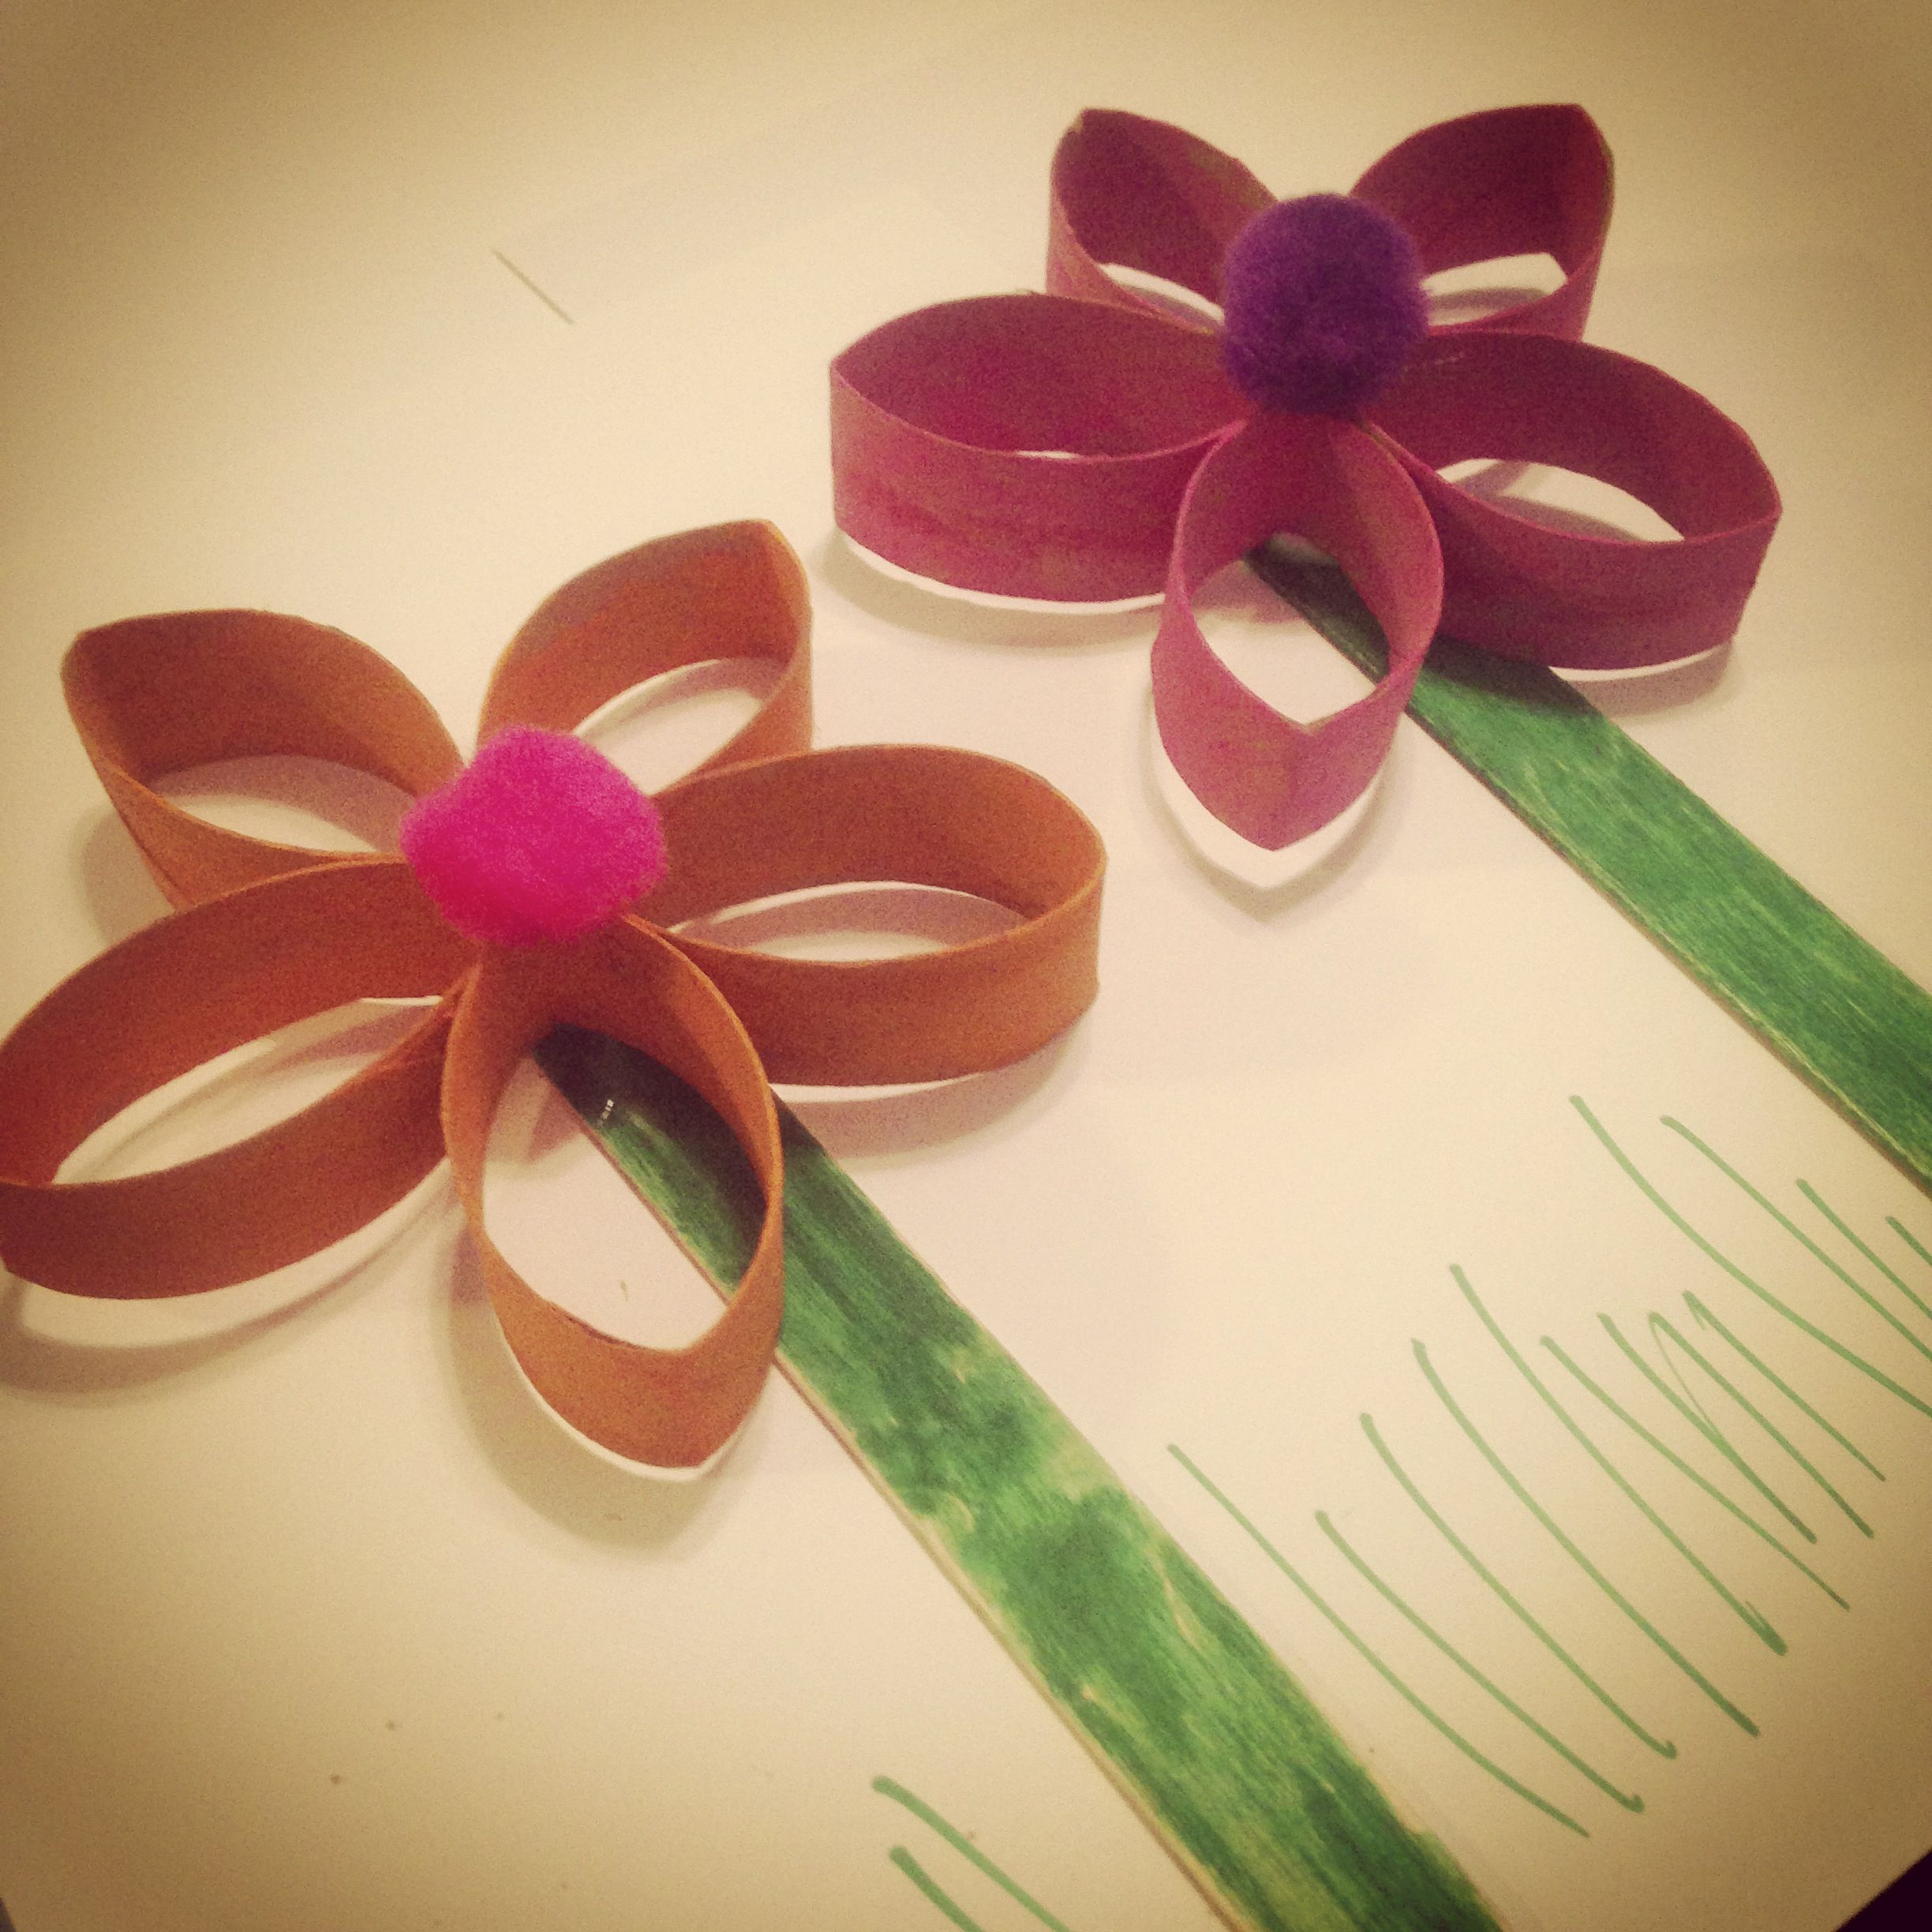 Flowers Made Out Of Toilet Roll Tubes And Popsicle Stick Ideas